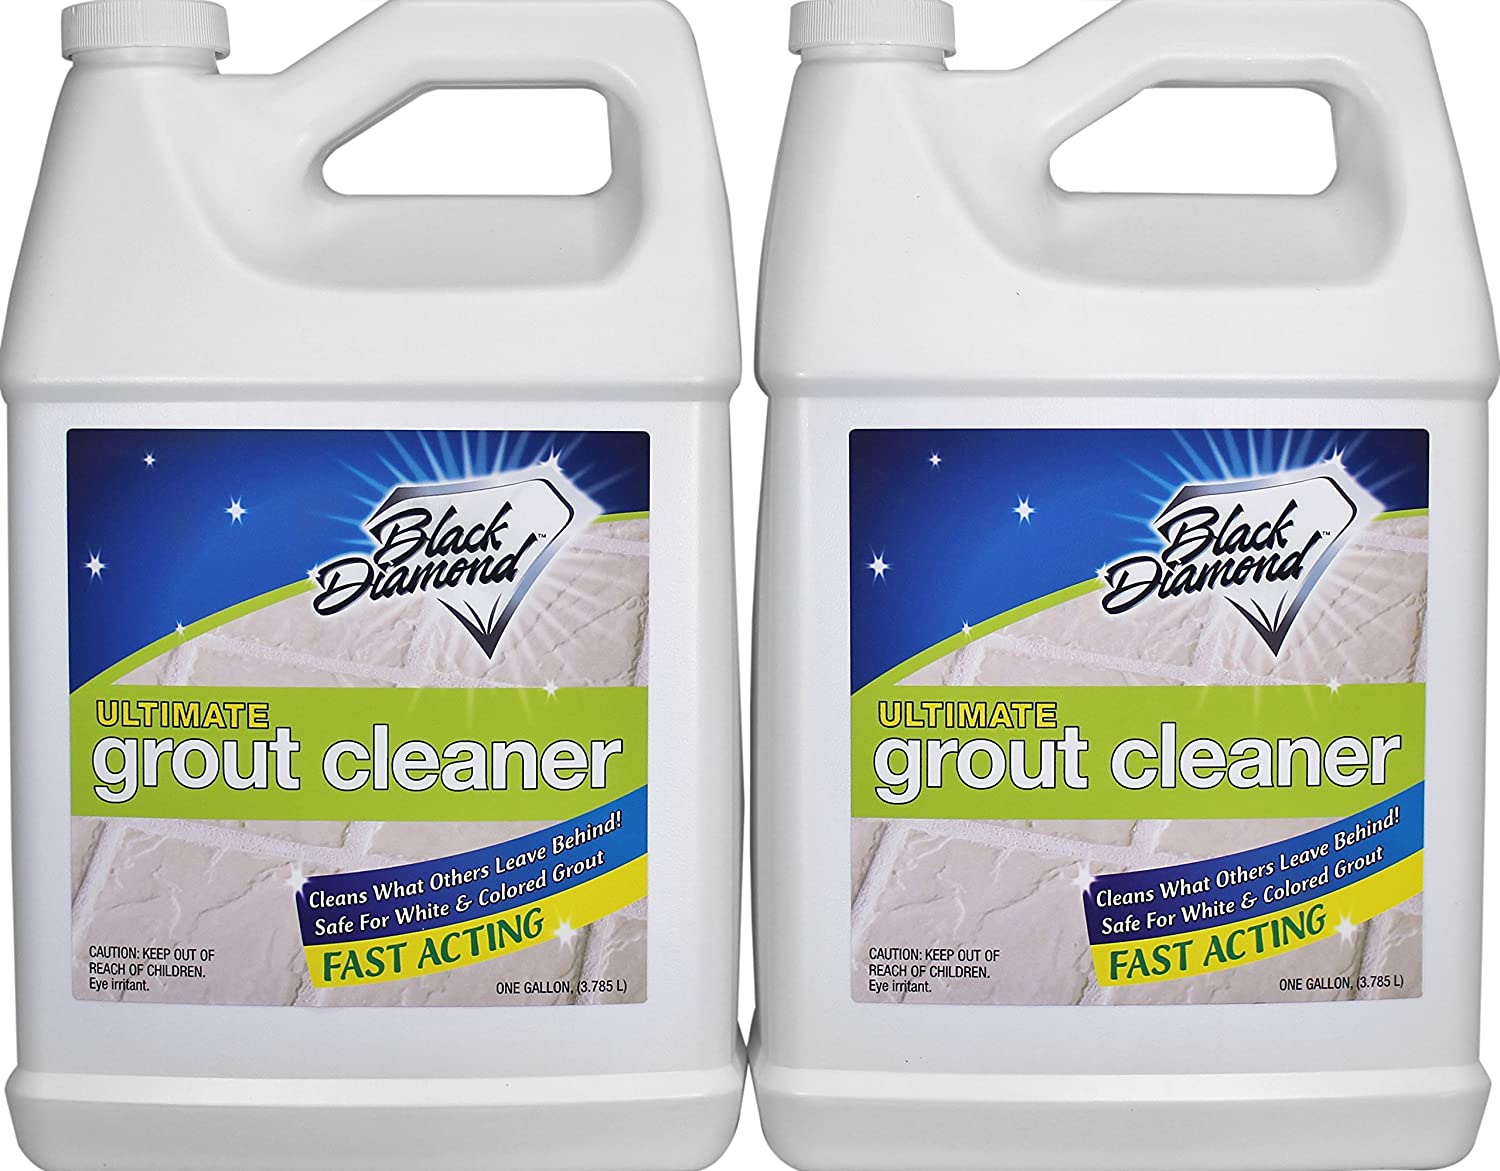 Ultimate grout cleaner best grout cleaner for tile and grout ultimate grout cleaner best grout cleaner for tile and grout cleaning acid free safe deep cleaner stain remover for even the dirtiest grout dailygadgetfo Gallery